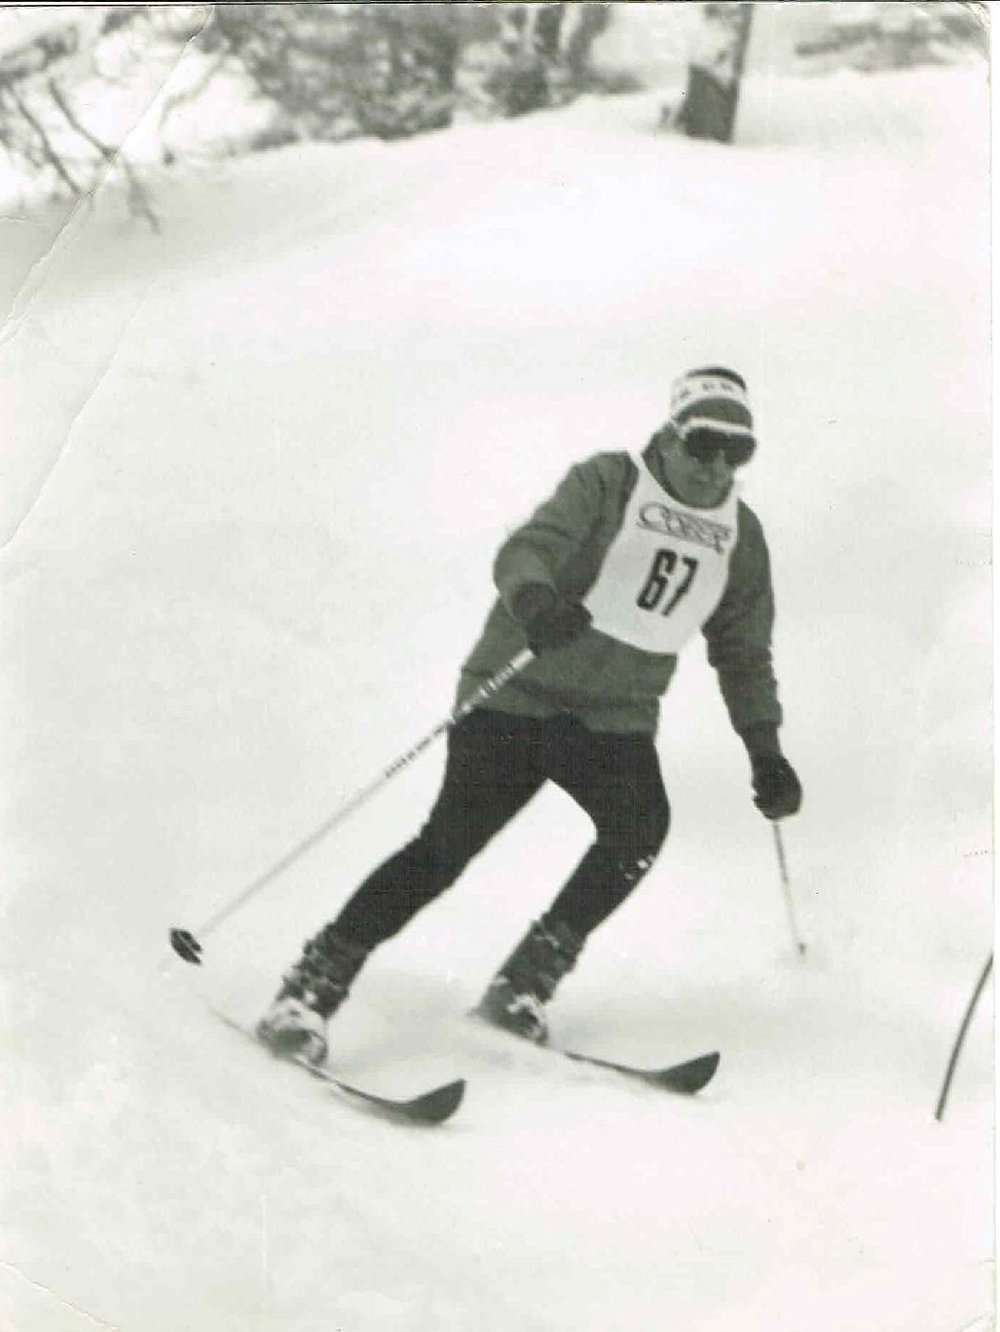 Arthur enjoying the visitors ski race at Sauze d oulx in about 1984-page-001.jpg